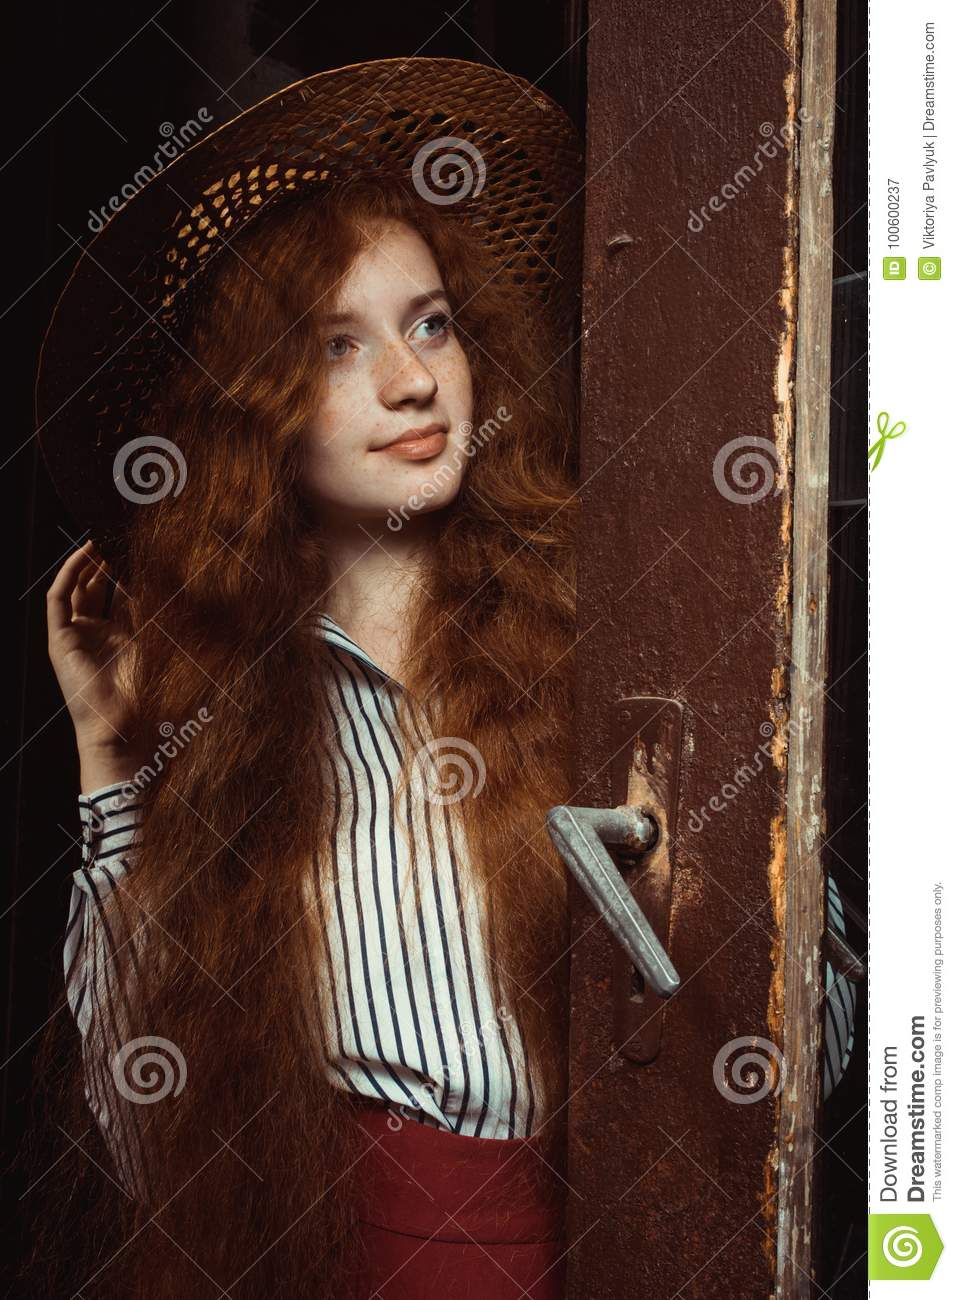 Francesca Capaldi (actress, model) in 2020   Red haired